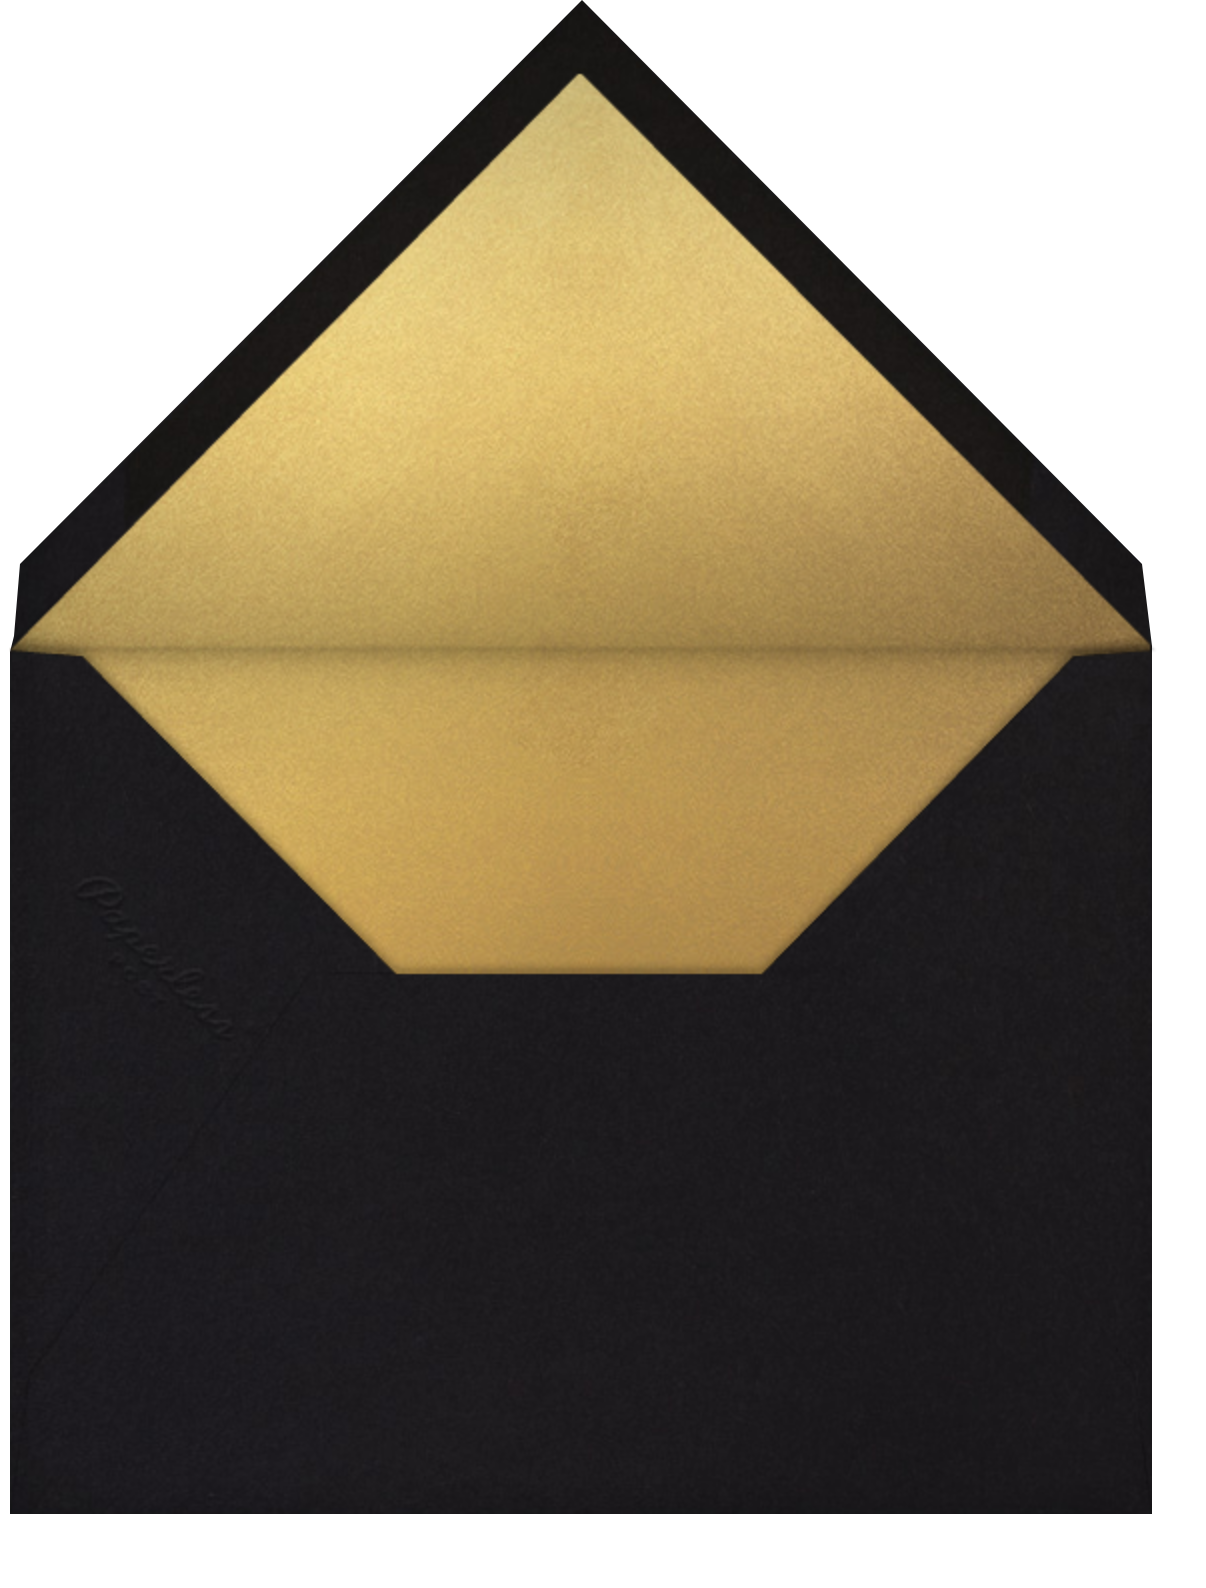 Cheers on Cheers - Gold - Paperless Post - Adult birthday - envelope back